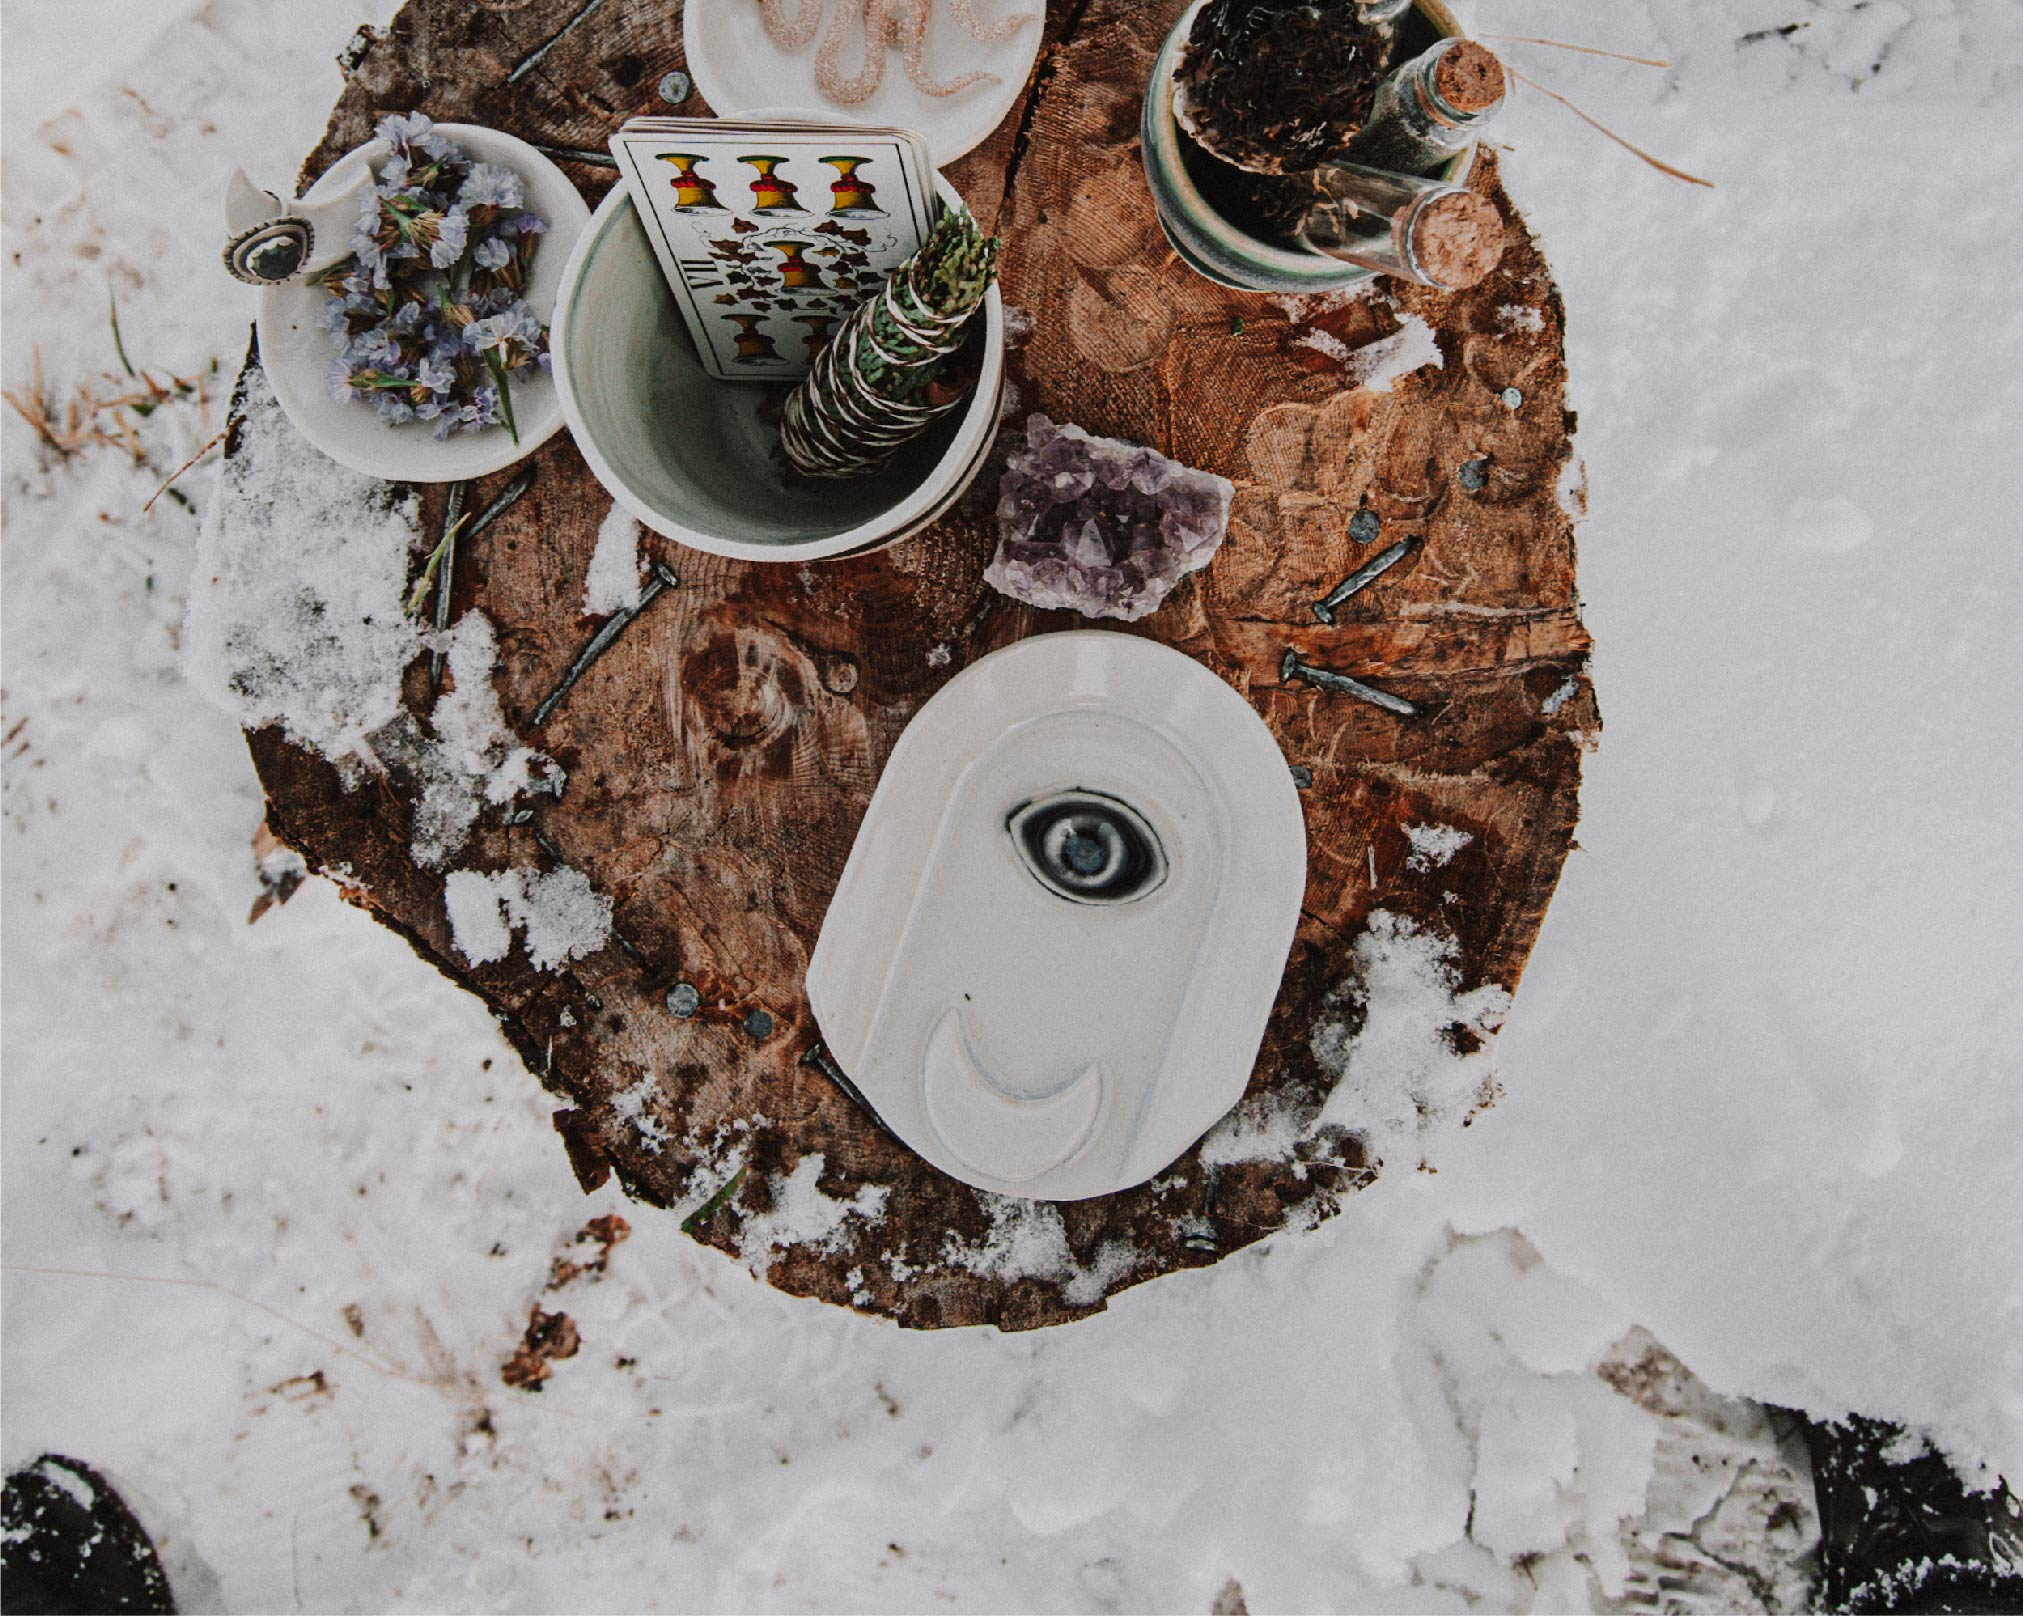 A setting of handmade ceramics, sage, and more witchy things on a snowy stump outside